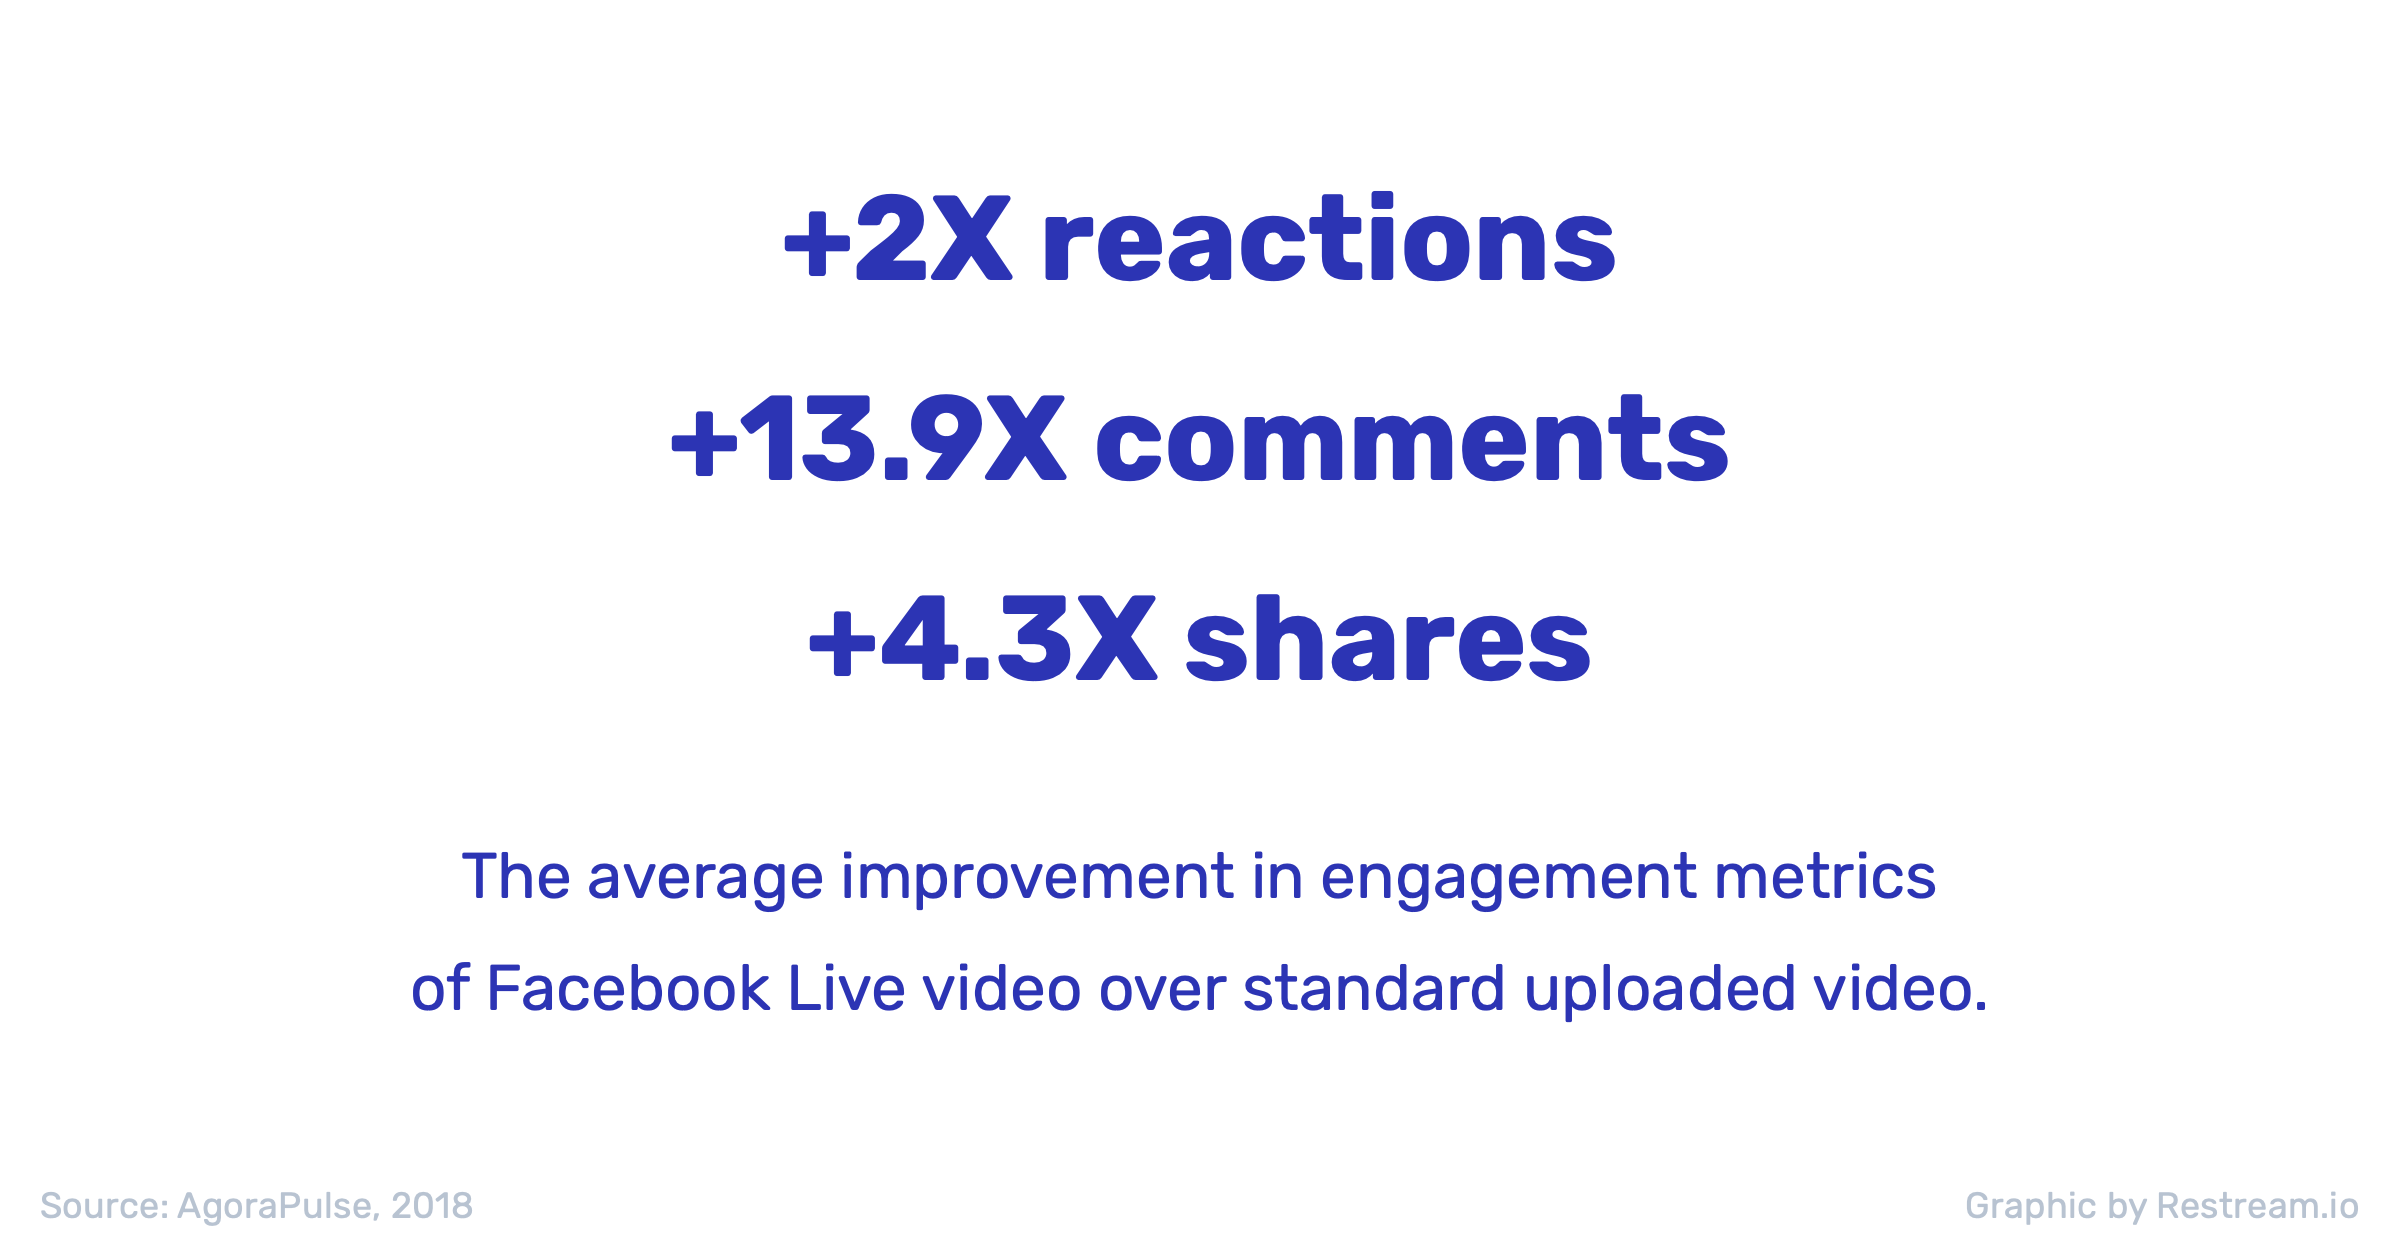 The average improvement in engagement metrics of Facebook Live +2x reactions +13,9x comments + 4,3x shares